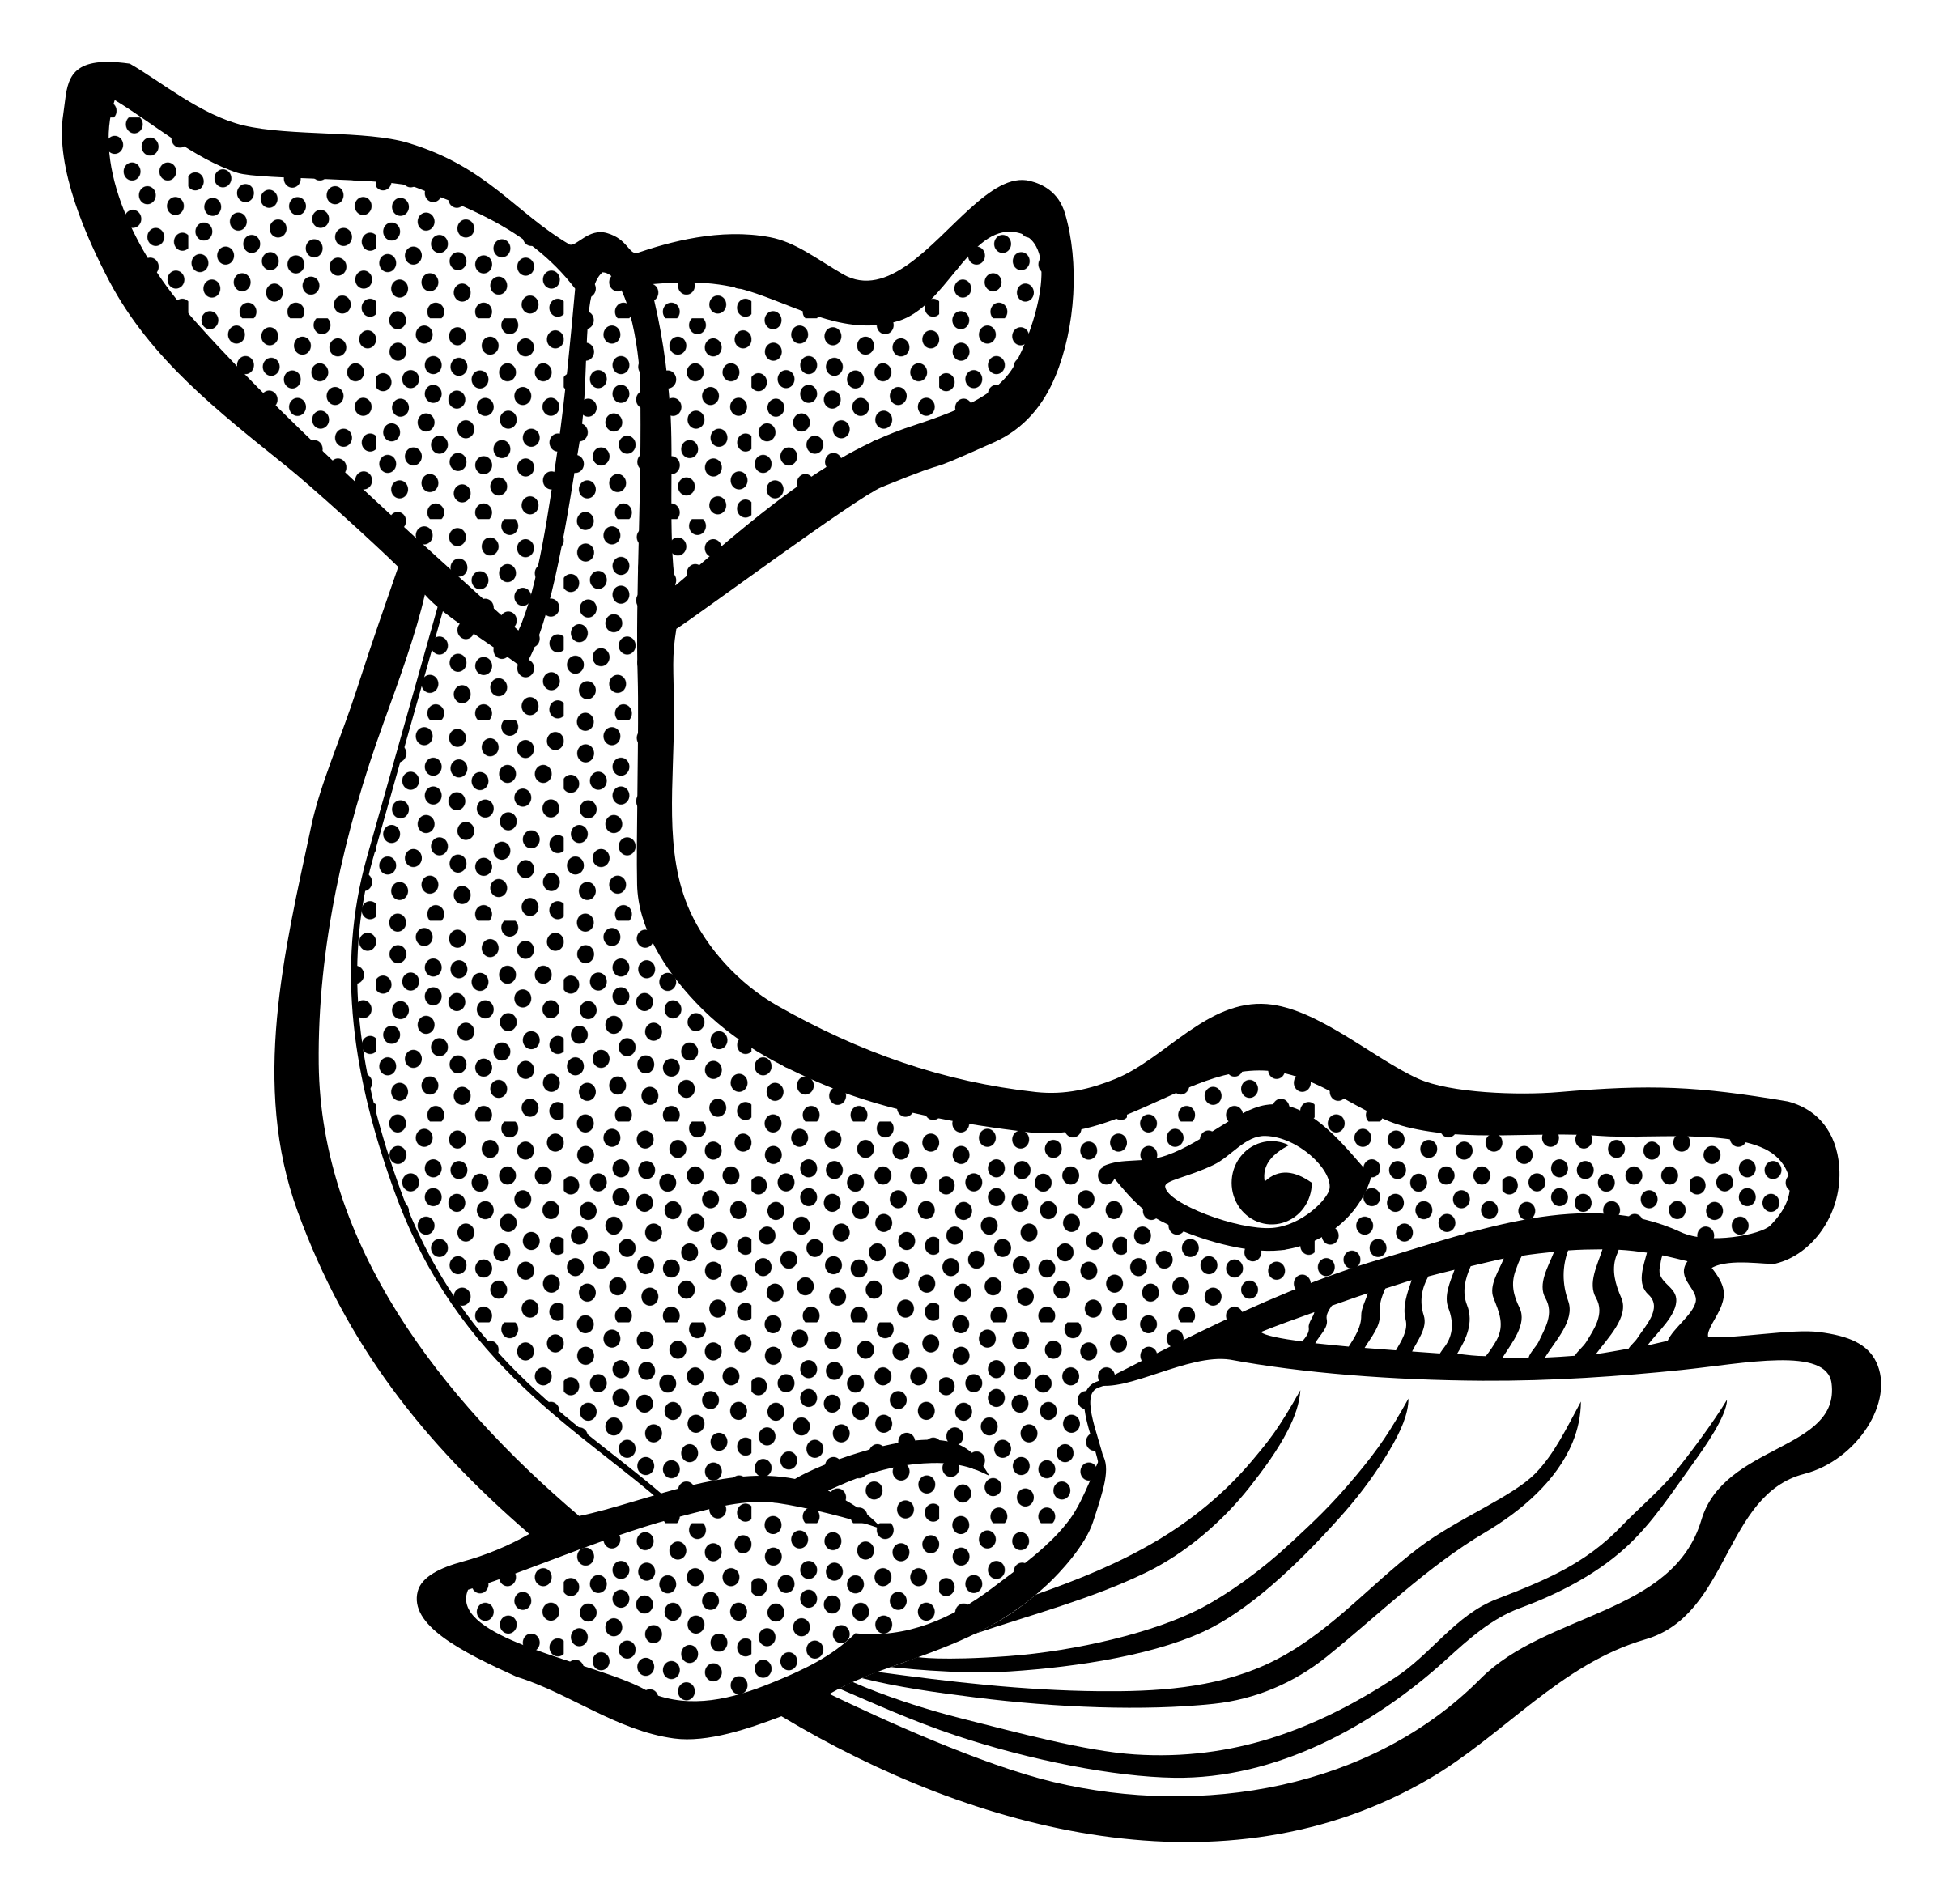 Lineart big image png. Clipart whale line art